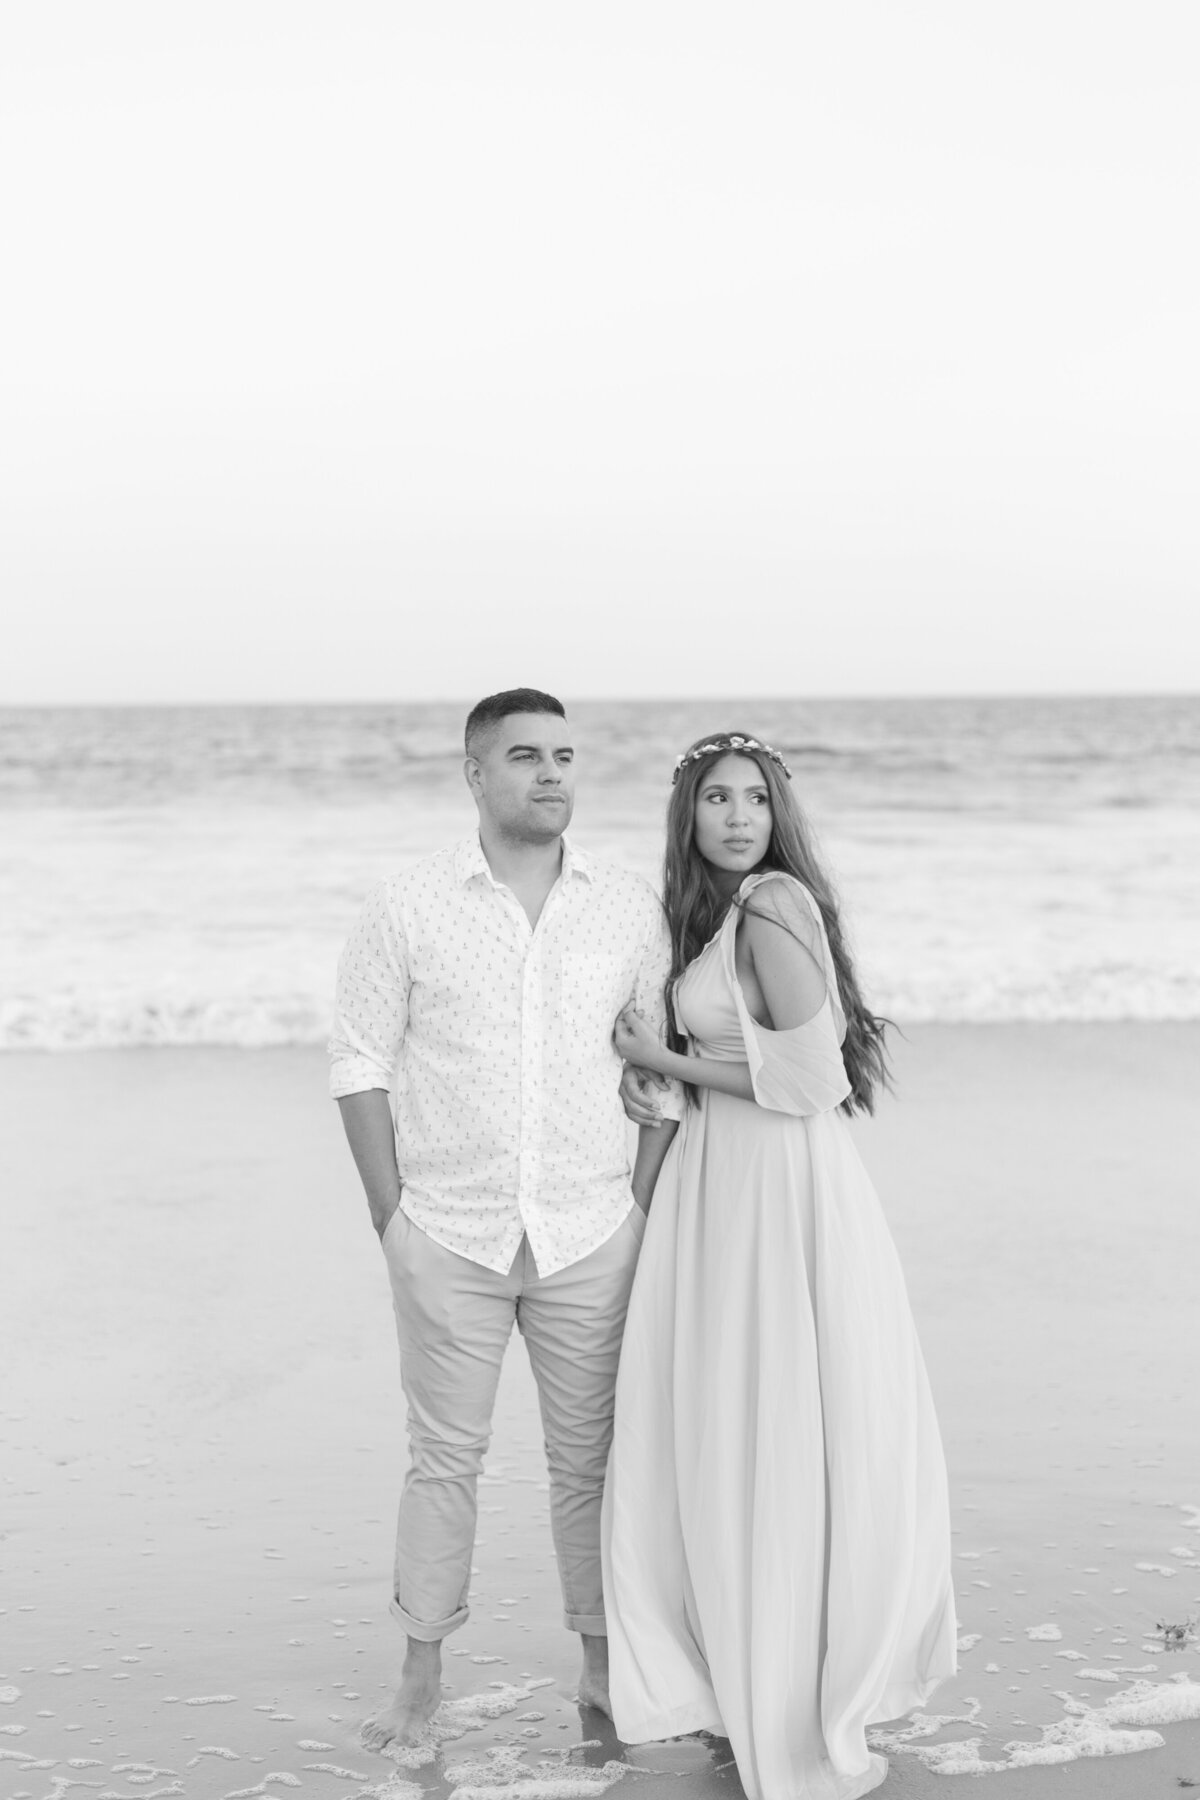 Scar-Vita-2019-Copyright-Rockaway-Beach-Engagement-Session-16